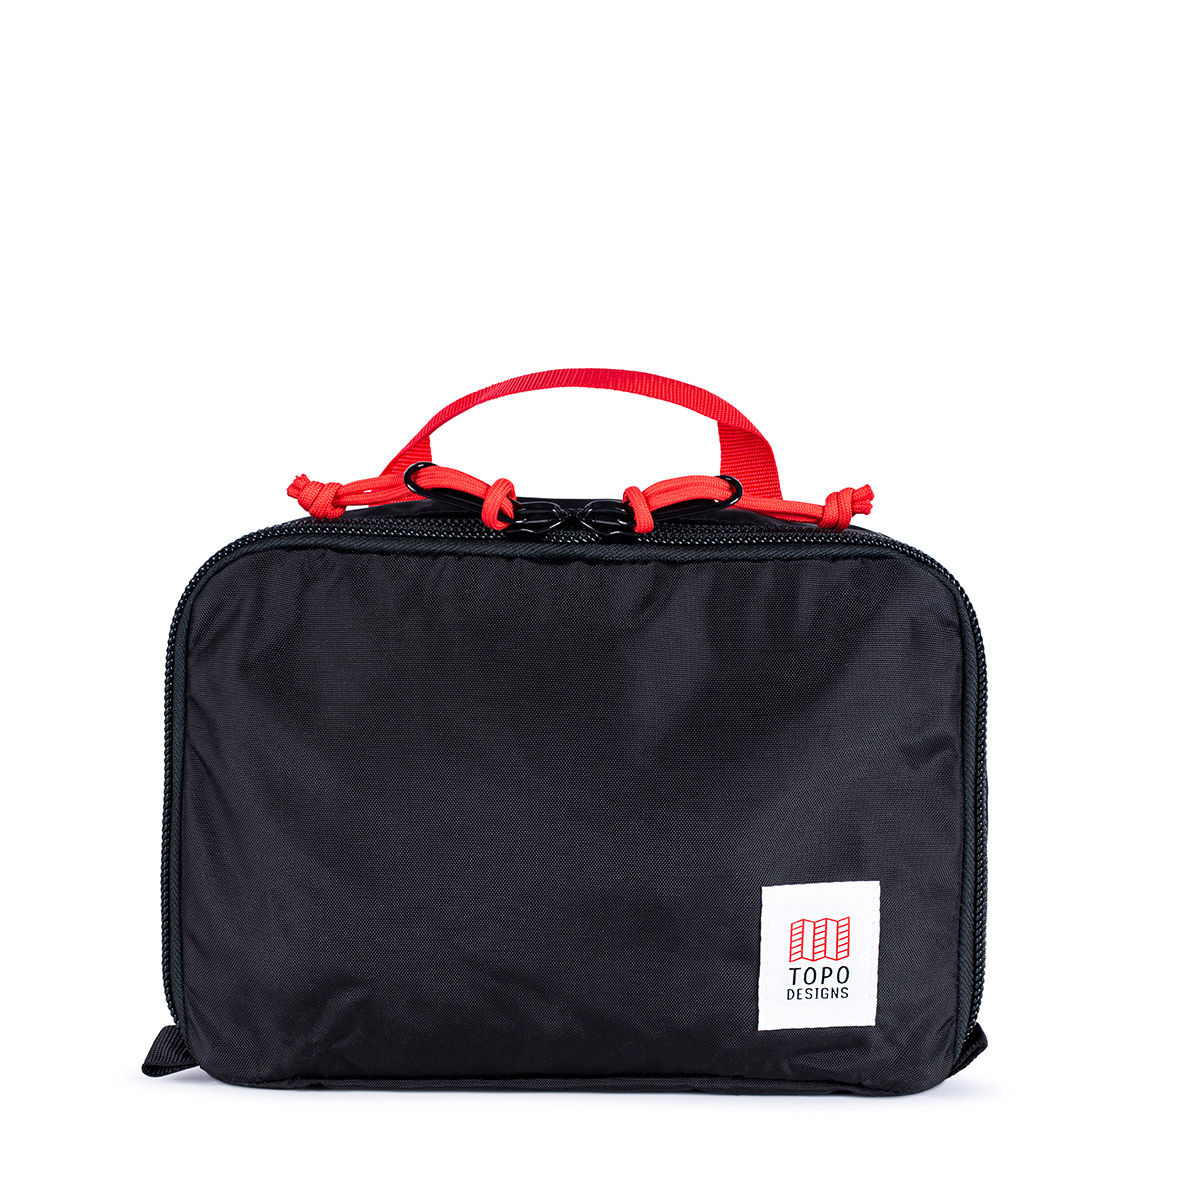 Topo Designs Pack Bag 5L Black, a simple, durable and highly functional way to organize your luggage